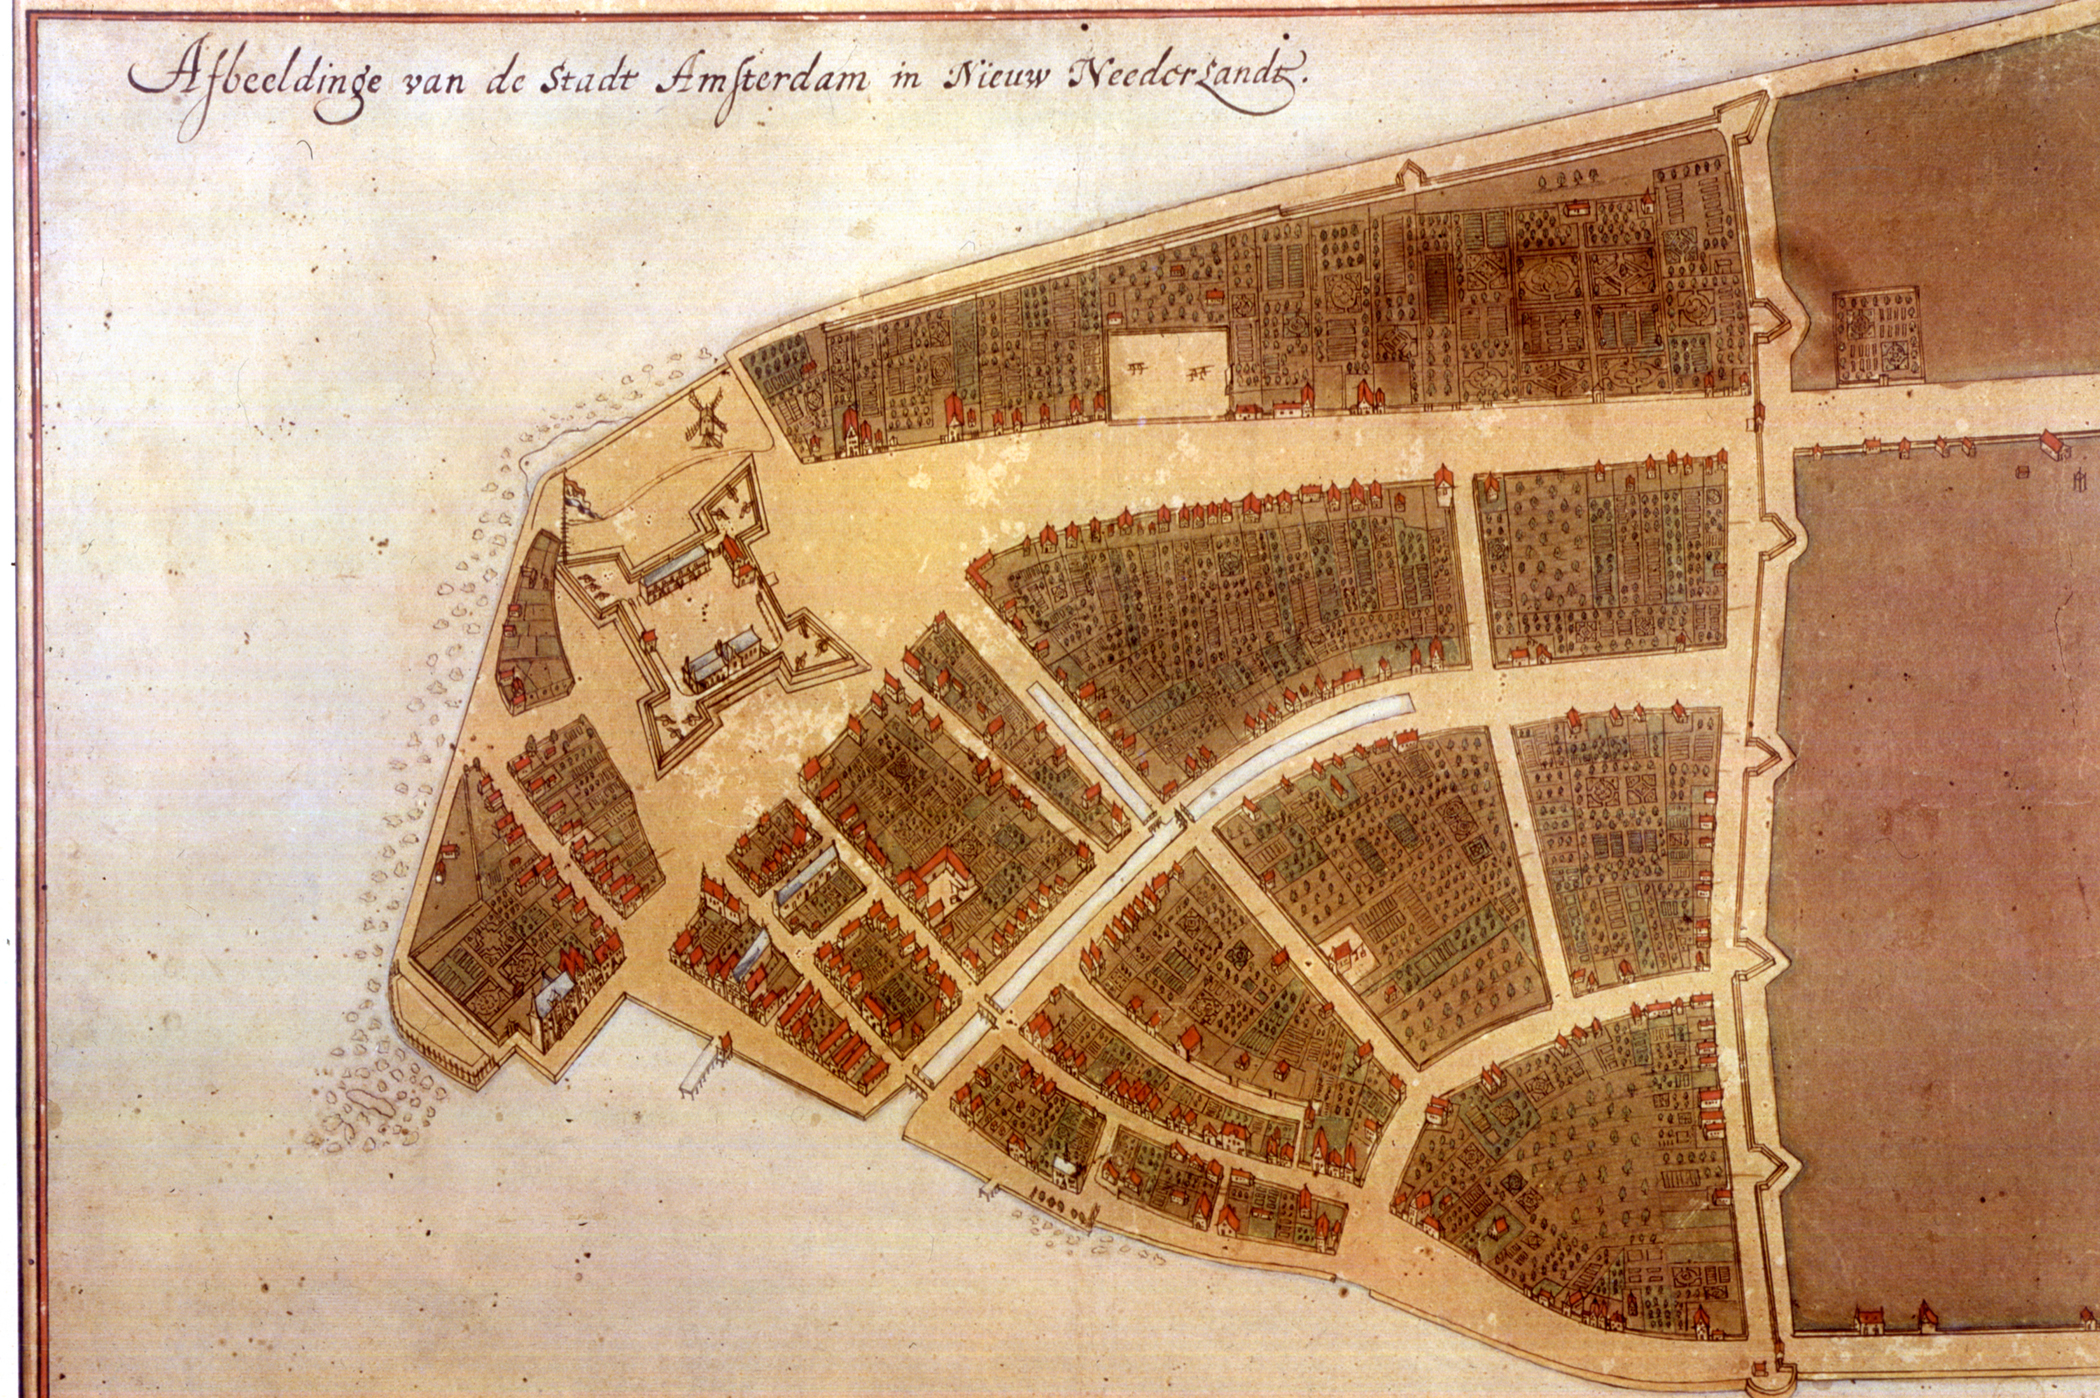 The original en:Castello Plan. Full size photograph of manuscript map in the Biblioteca Medicea-Laurenziana of Florence, Italy. The Castello plan is the earliest known plan of New Amsterdam, and the only one dating from the Dutch period. The text at the top of the image states: